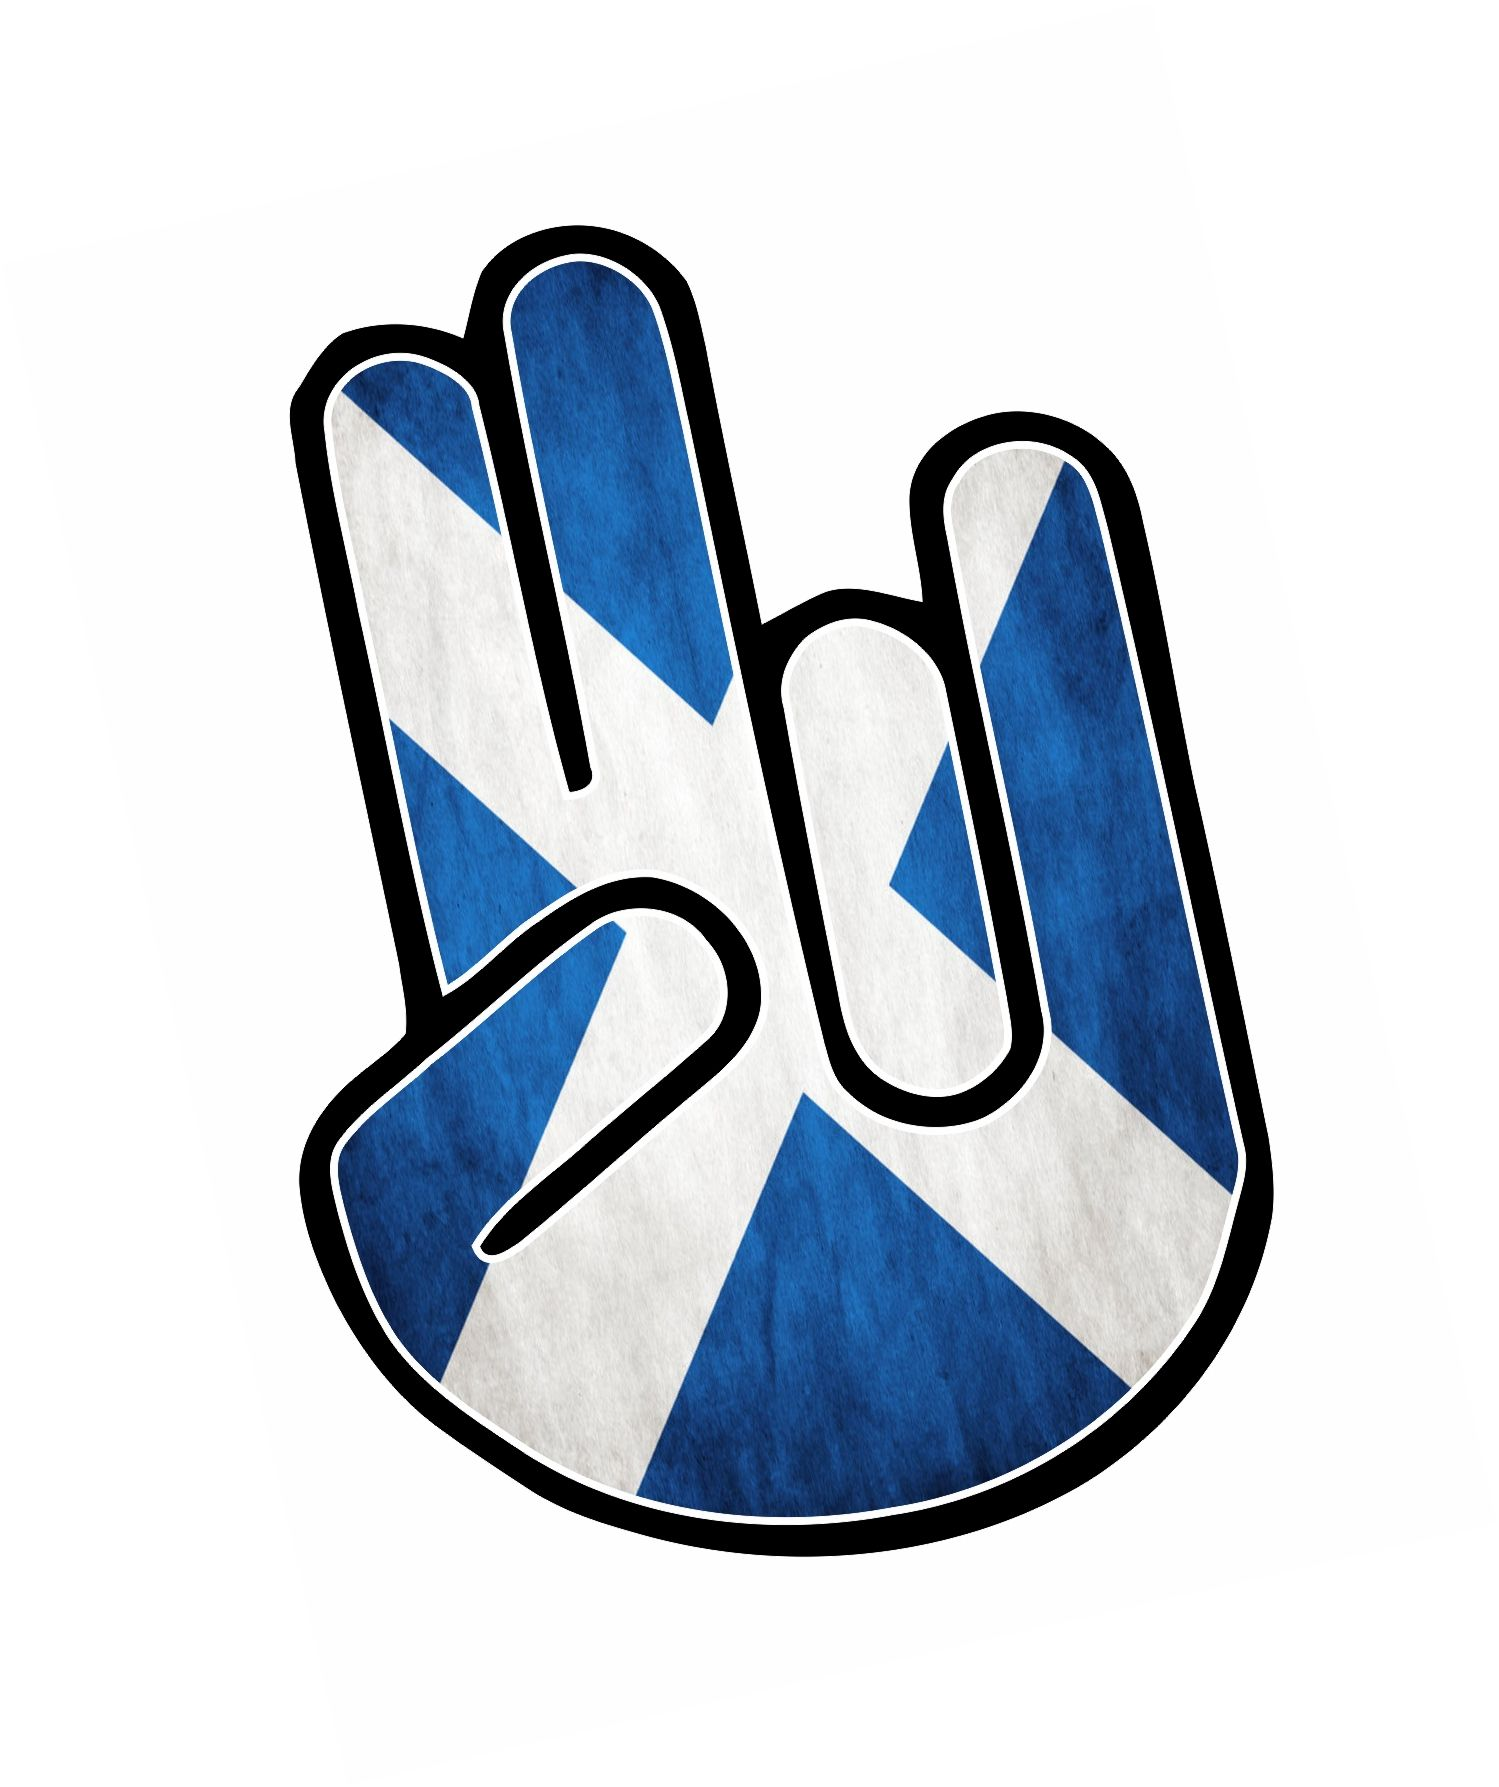 the shocker hand with scotland scottish saltire flag motif